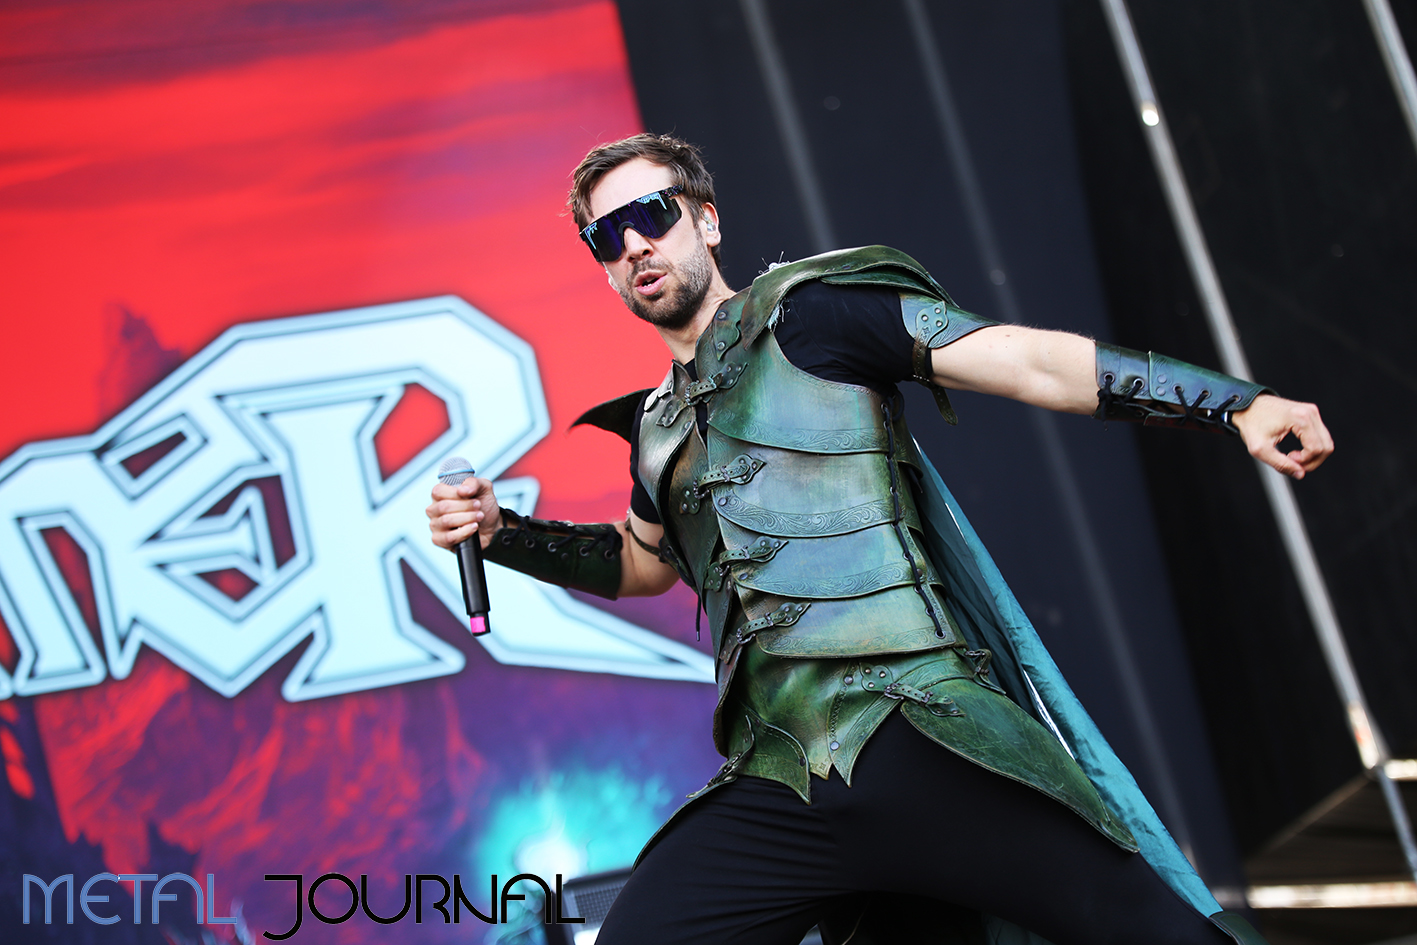 gloryhammer - leyendas del rock 2019 metal journal pic 7